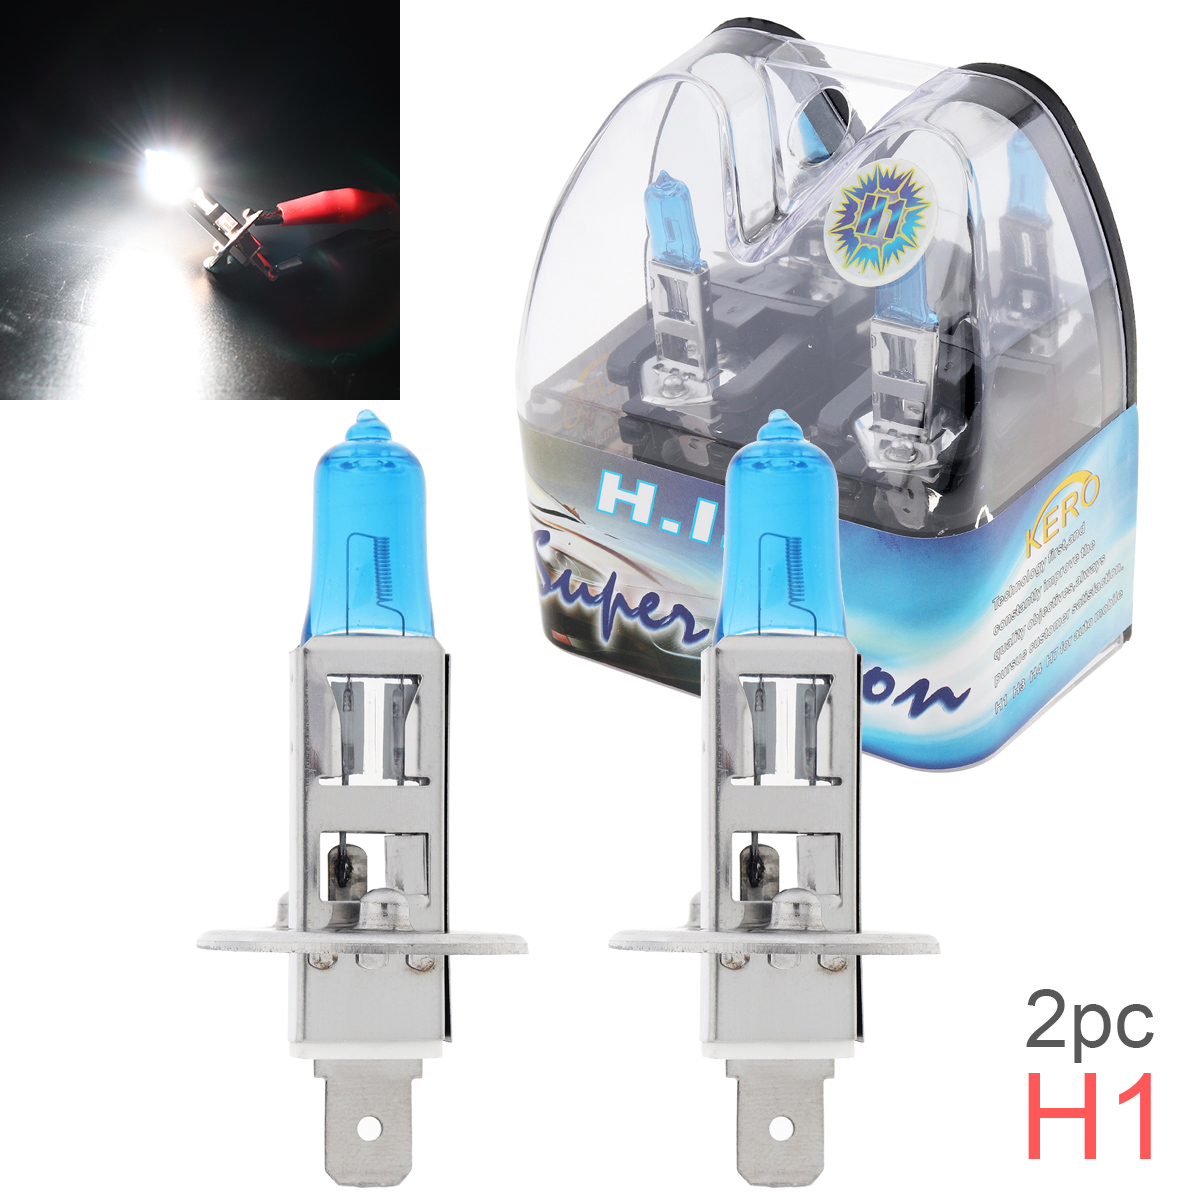 2pcs 12V H1 55W 6000K White Light Super Bright Car Xenon Halogen Lamp Auto Front Headlight Fog Bulb